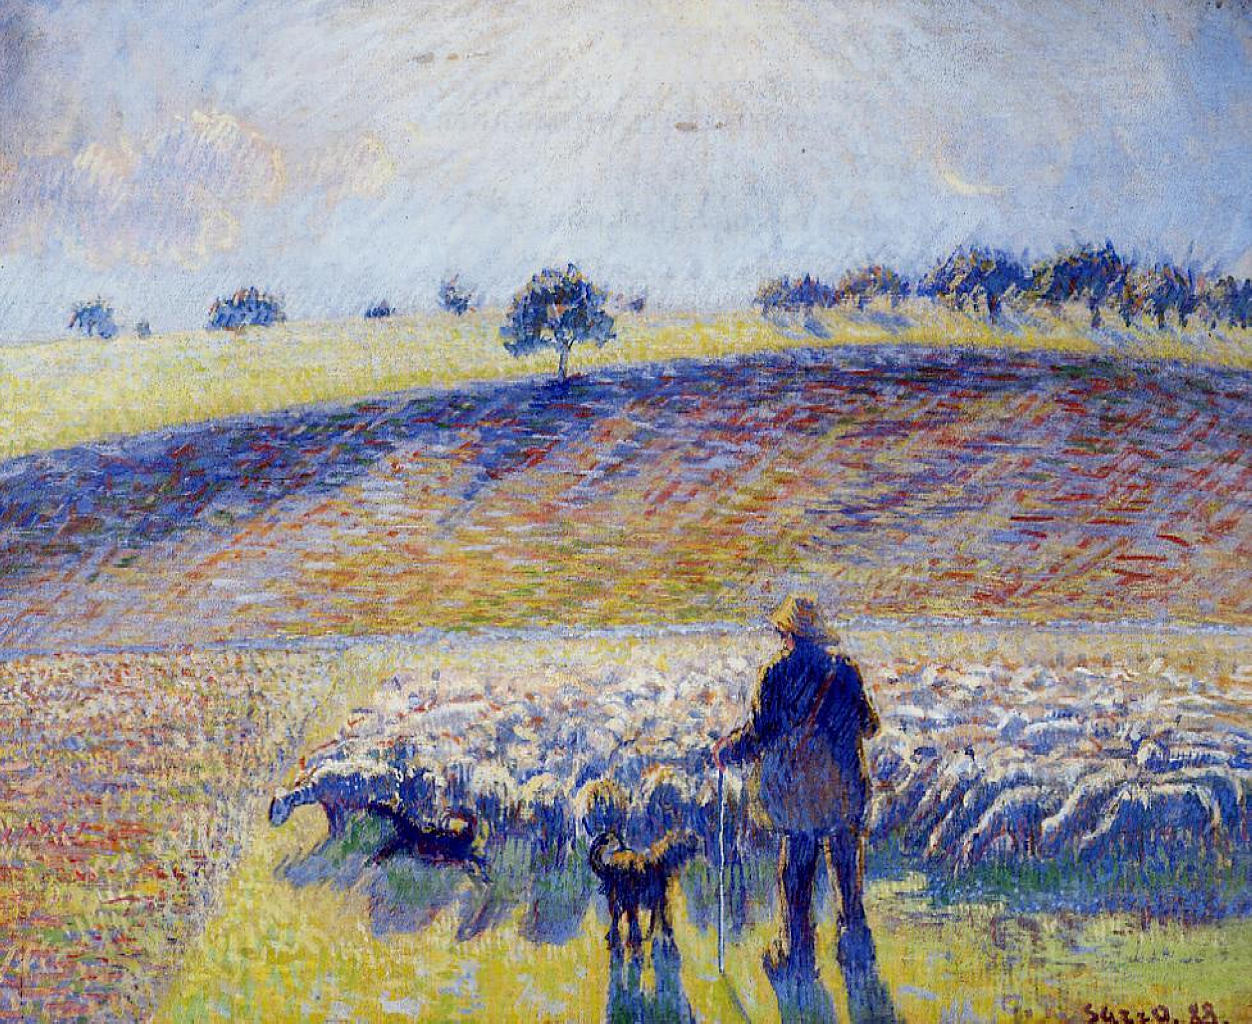 Pissarro, Camille.  Shepherd And Sheep . 1888. WikiPaintings. Web. 7 February 2017. <www.wikipaintings.org>. This artwork is in the public domain.